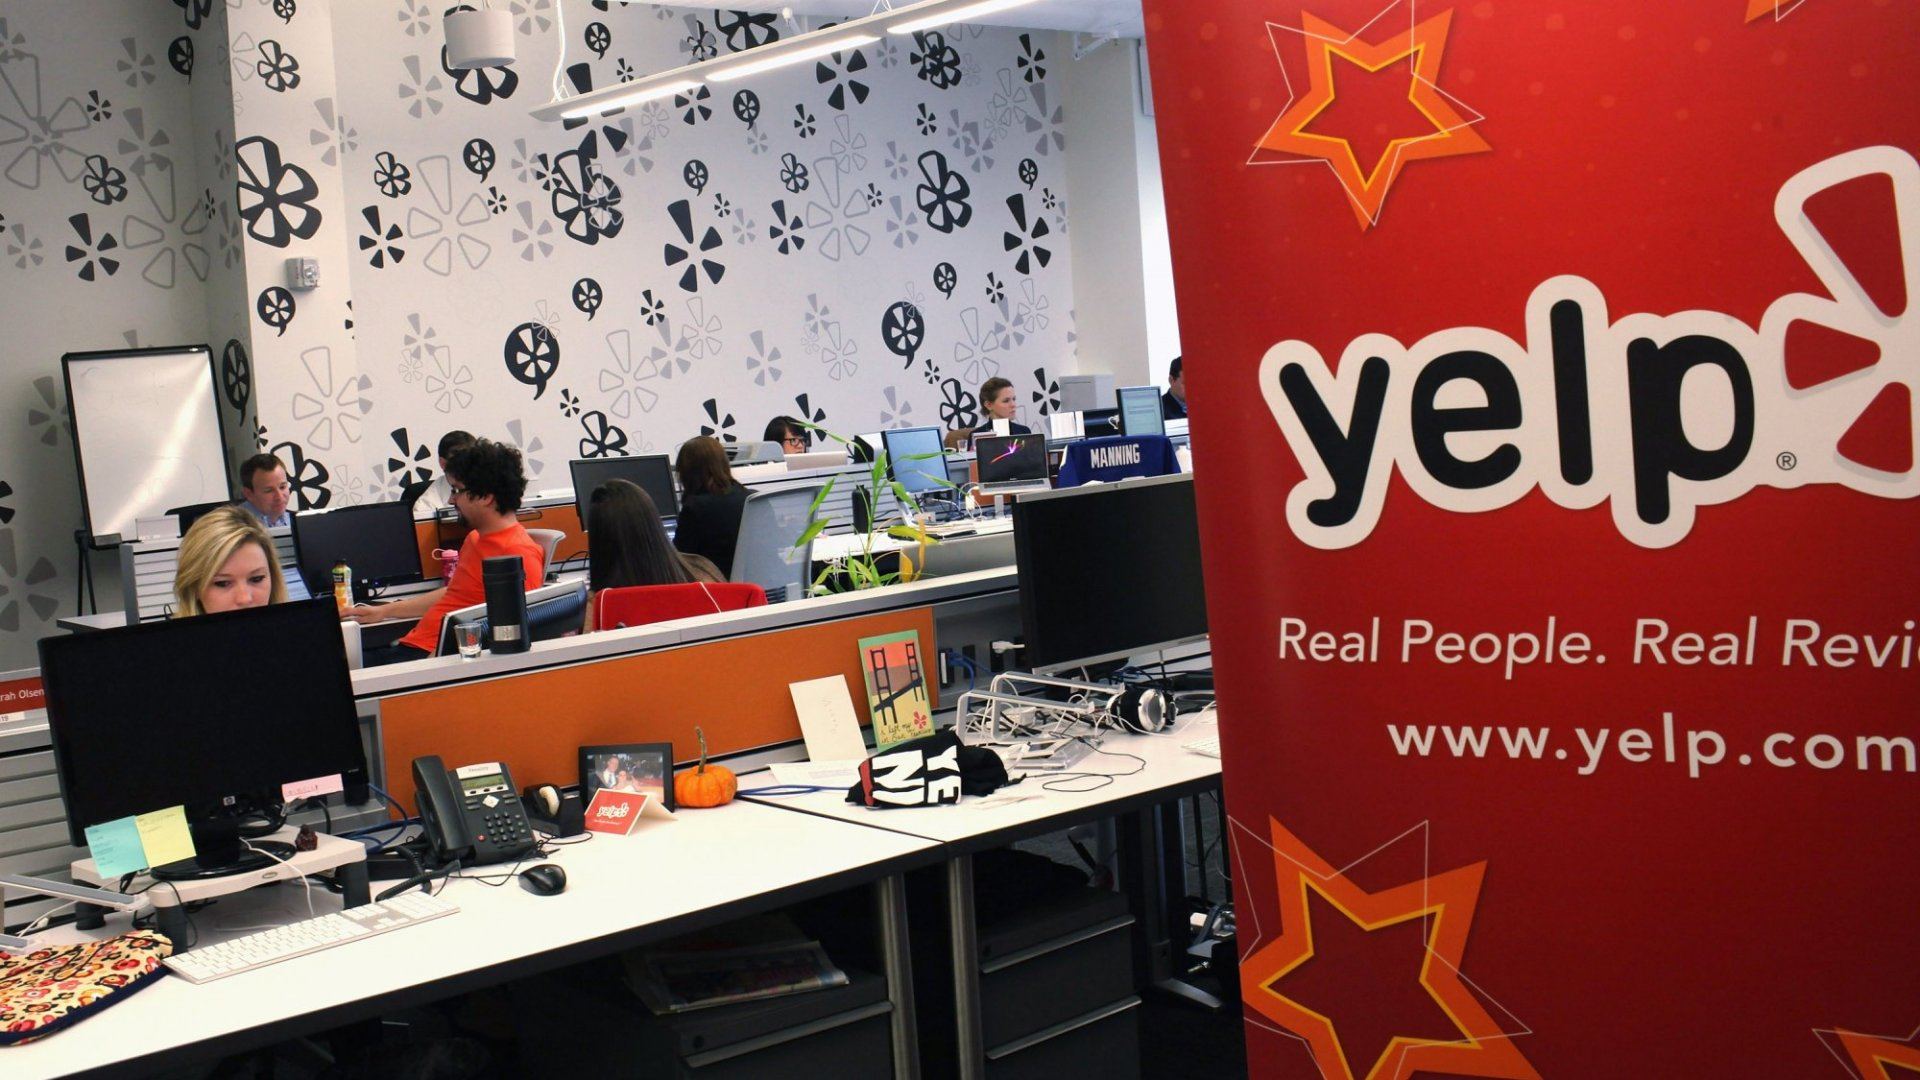 Another Disgruntled Yelp Employee Took to Medium to Complain. And Then This Happened